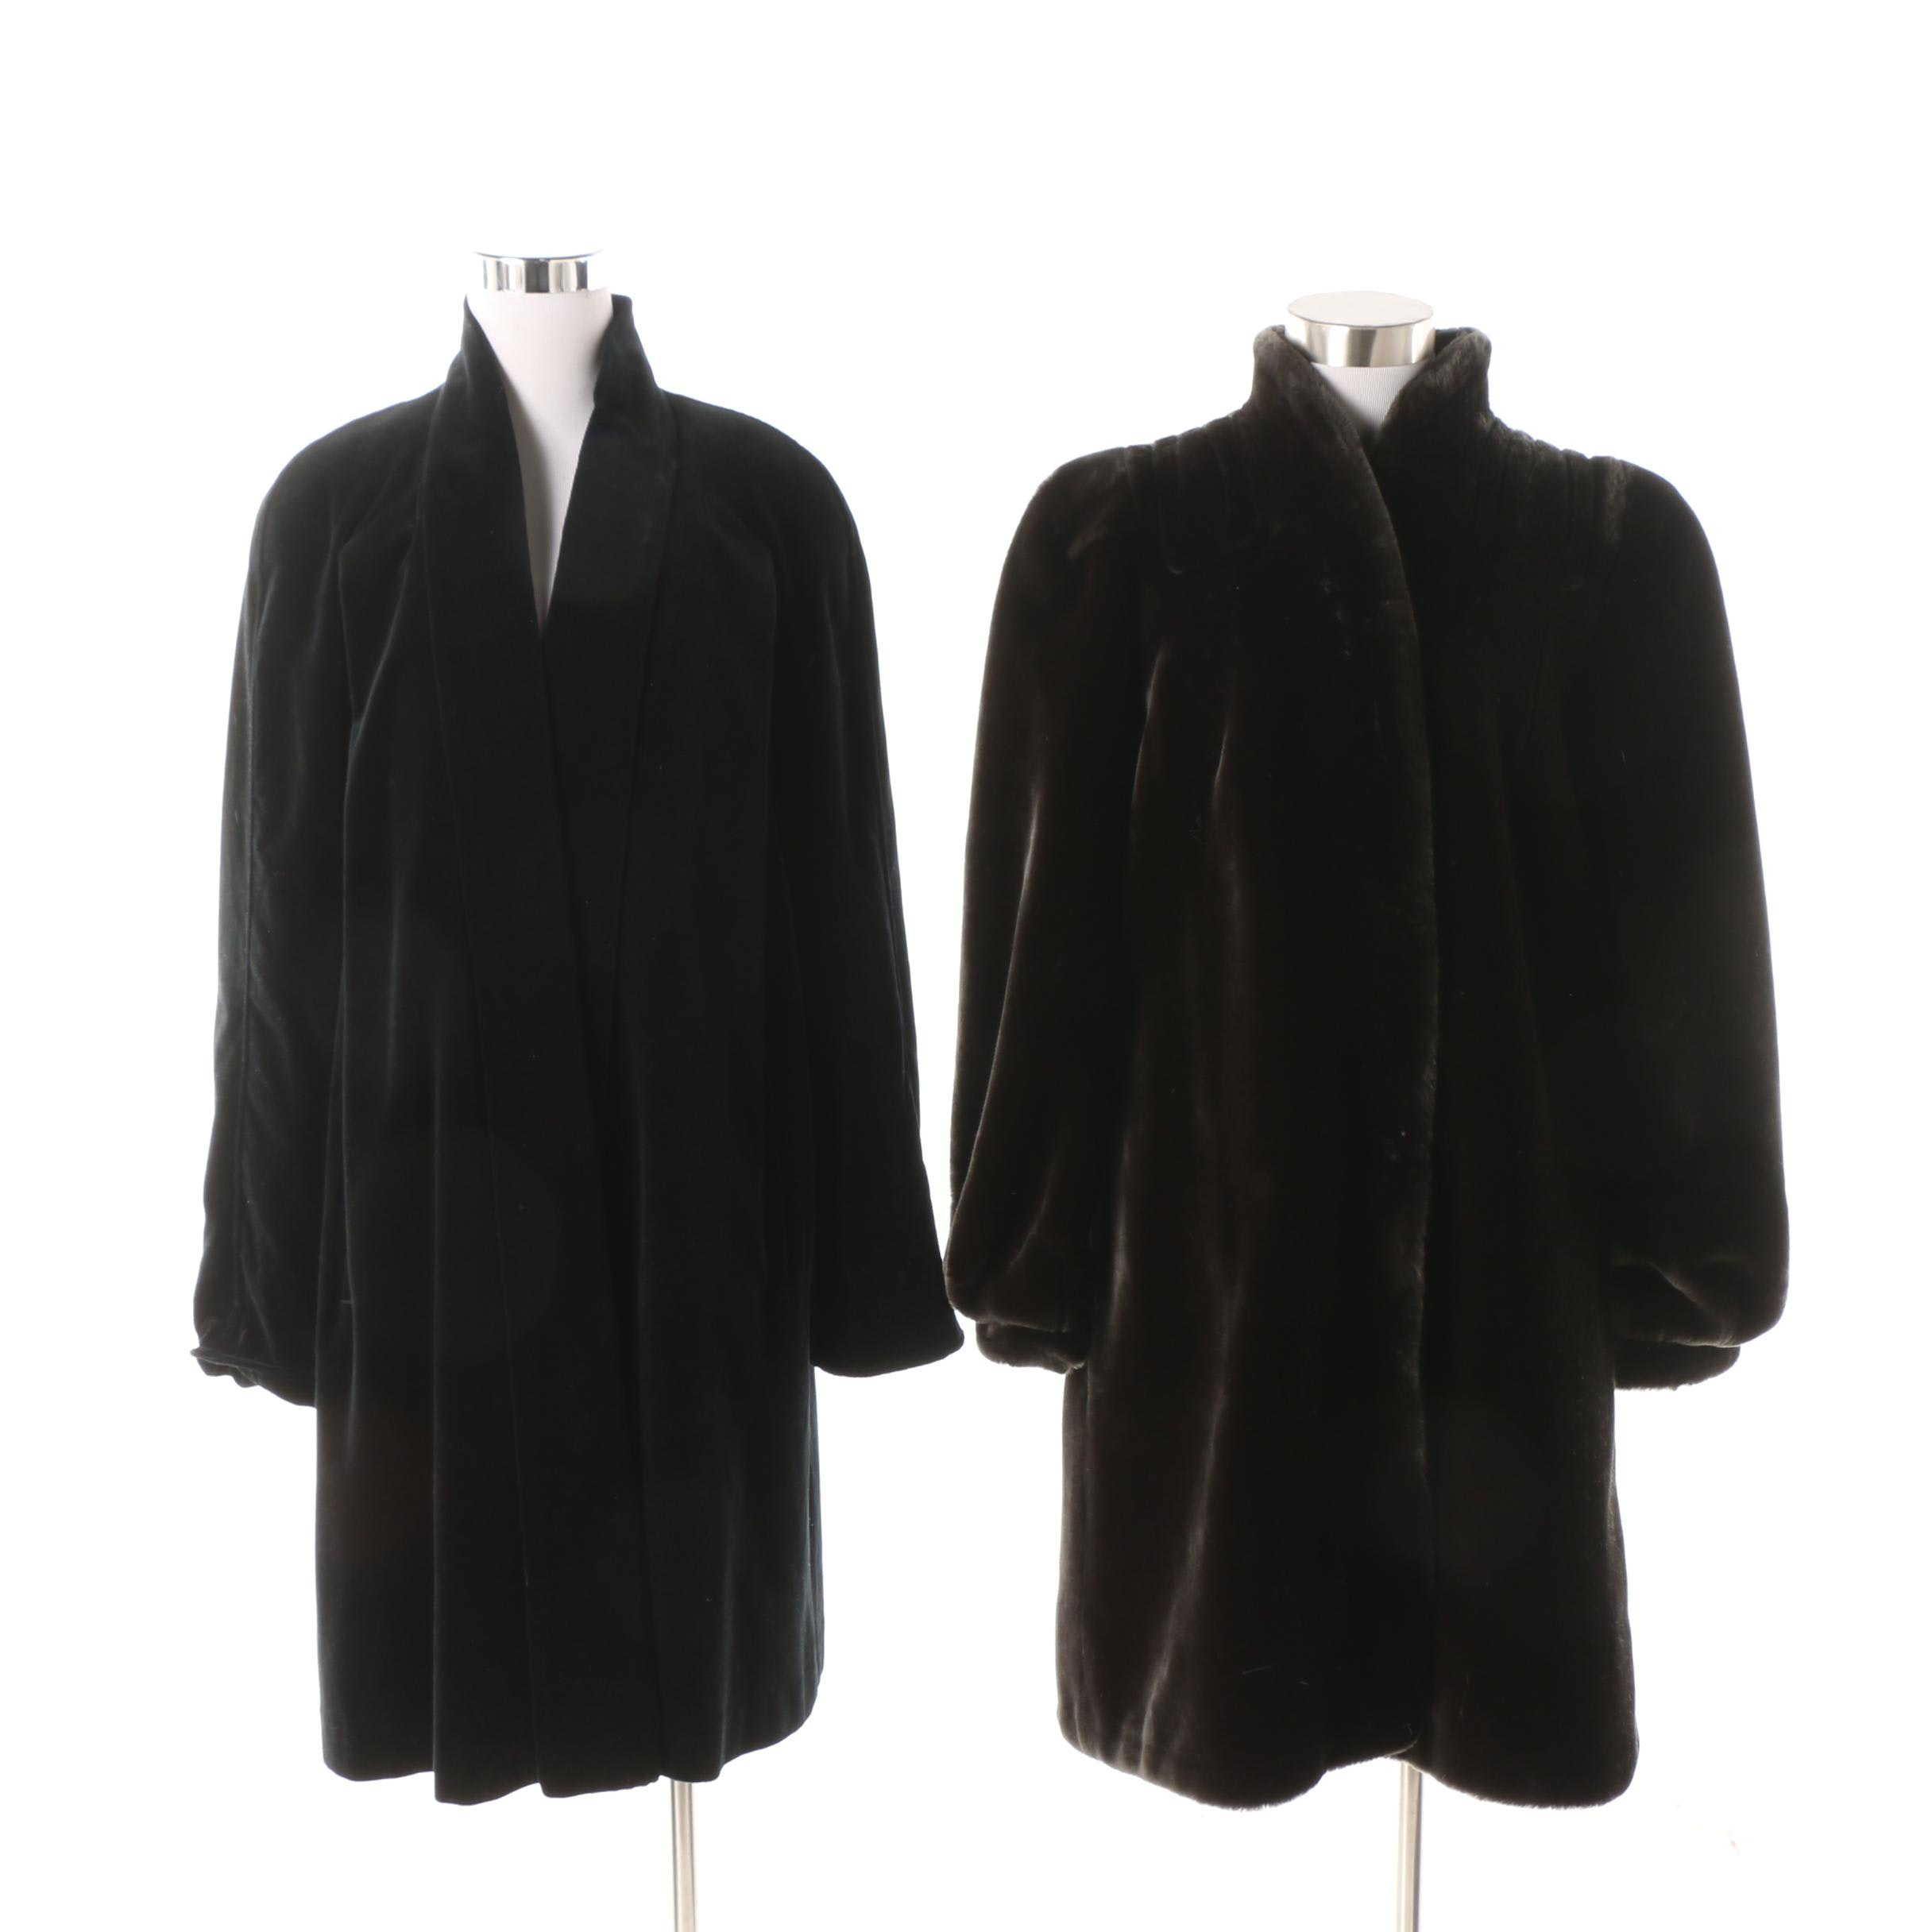 Women's 1990s Faux Fur Coat and Black Velvet Jacket